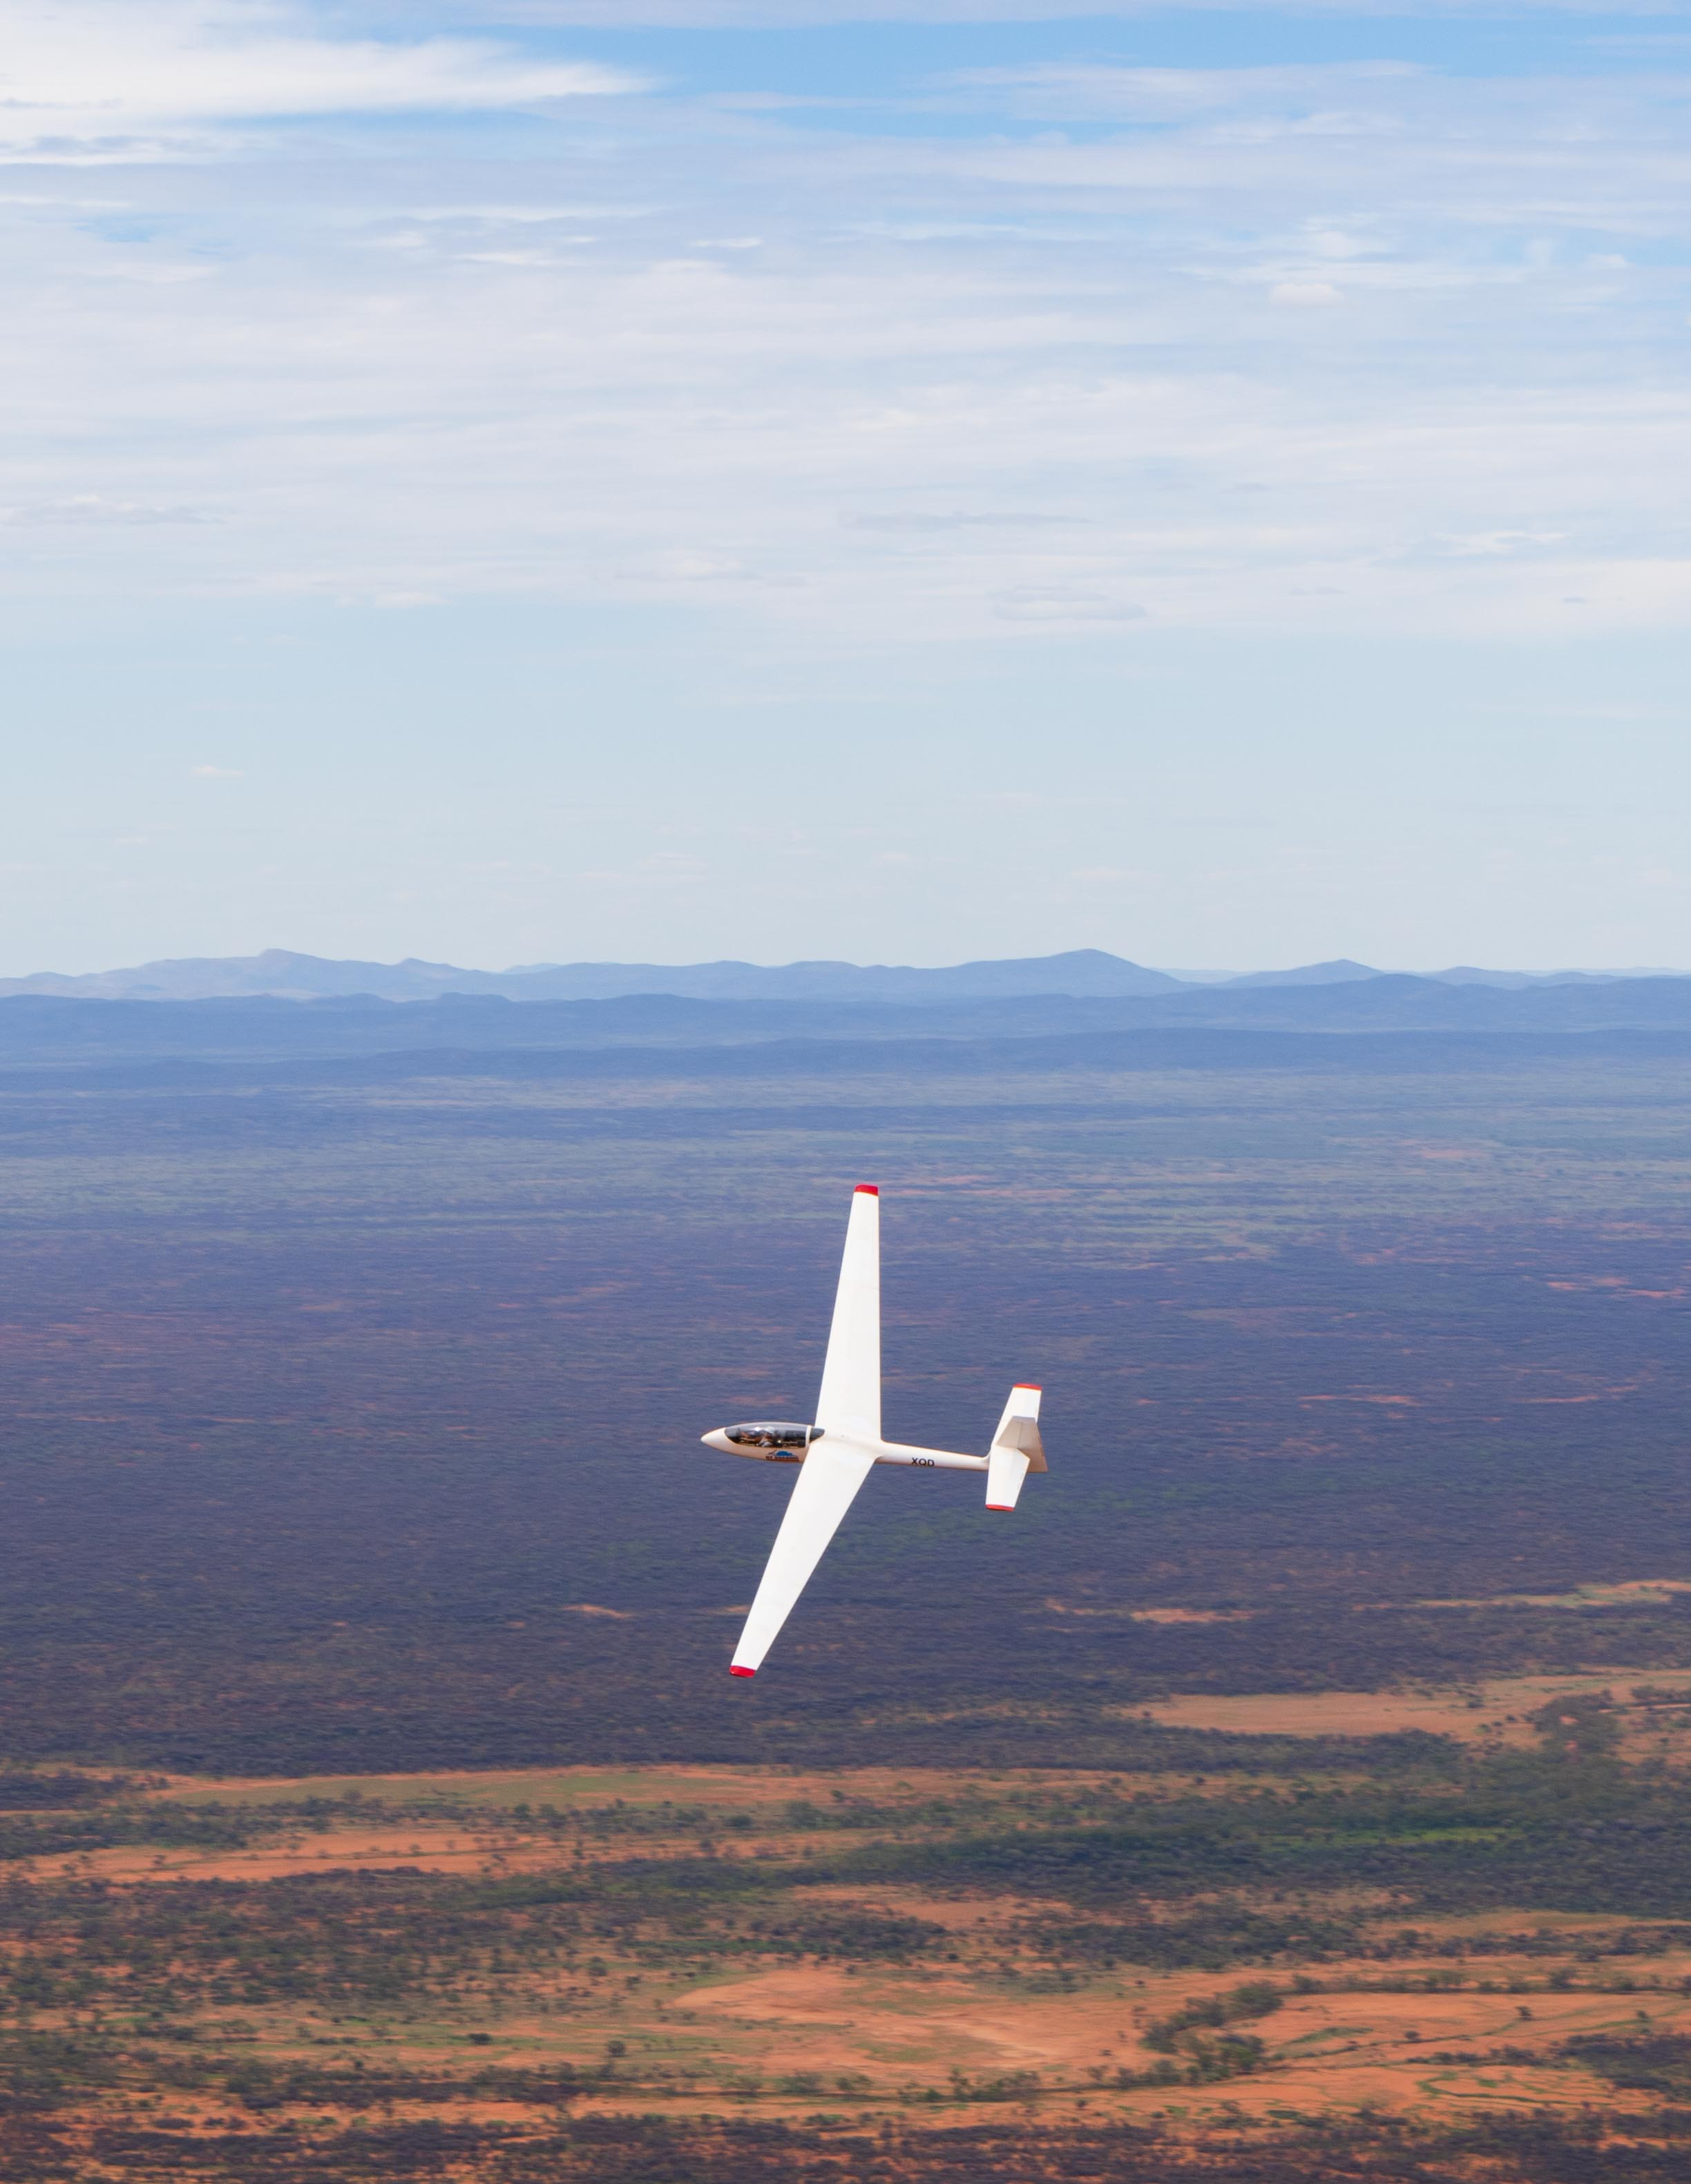 The pathway to become a glider pilot